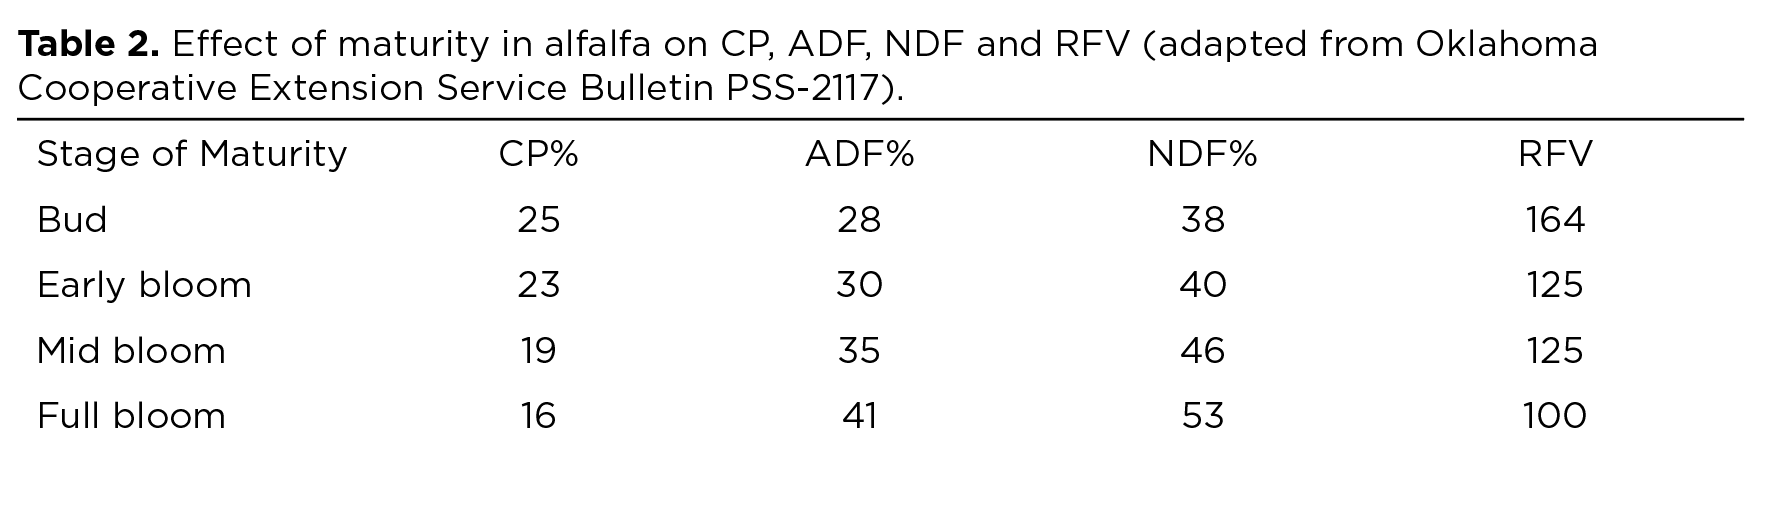 Table 2. Effect of maturity in alfalfa on CP, ADF, NDF and RFV (adapted from Oklahoma Cooperative Extension Service Bulletin PSS-2117).